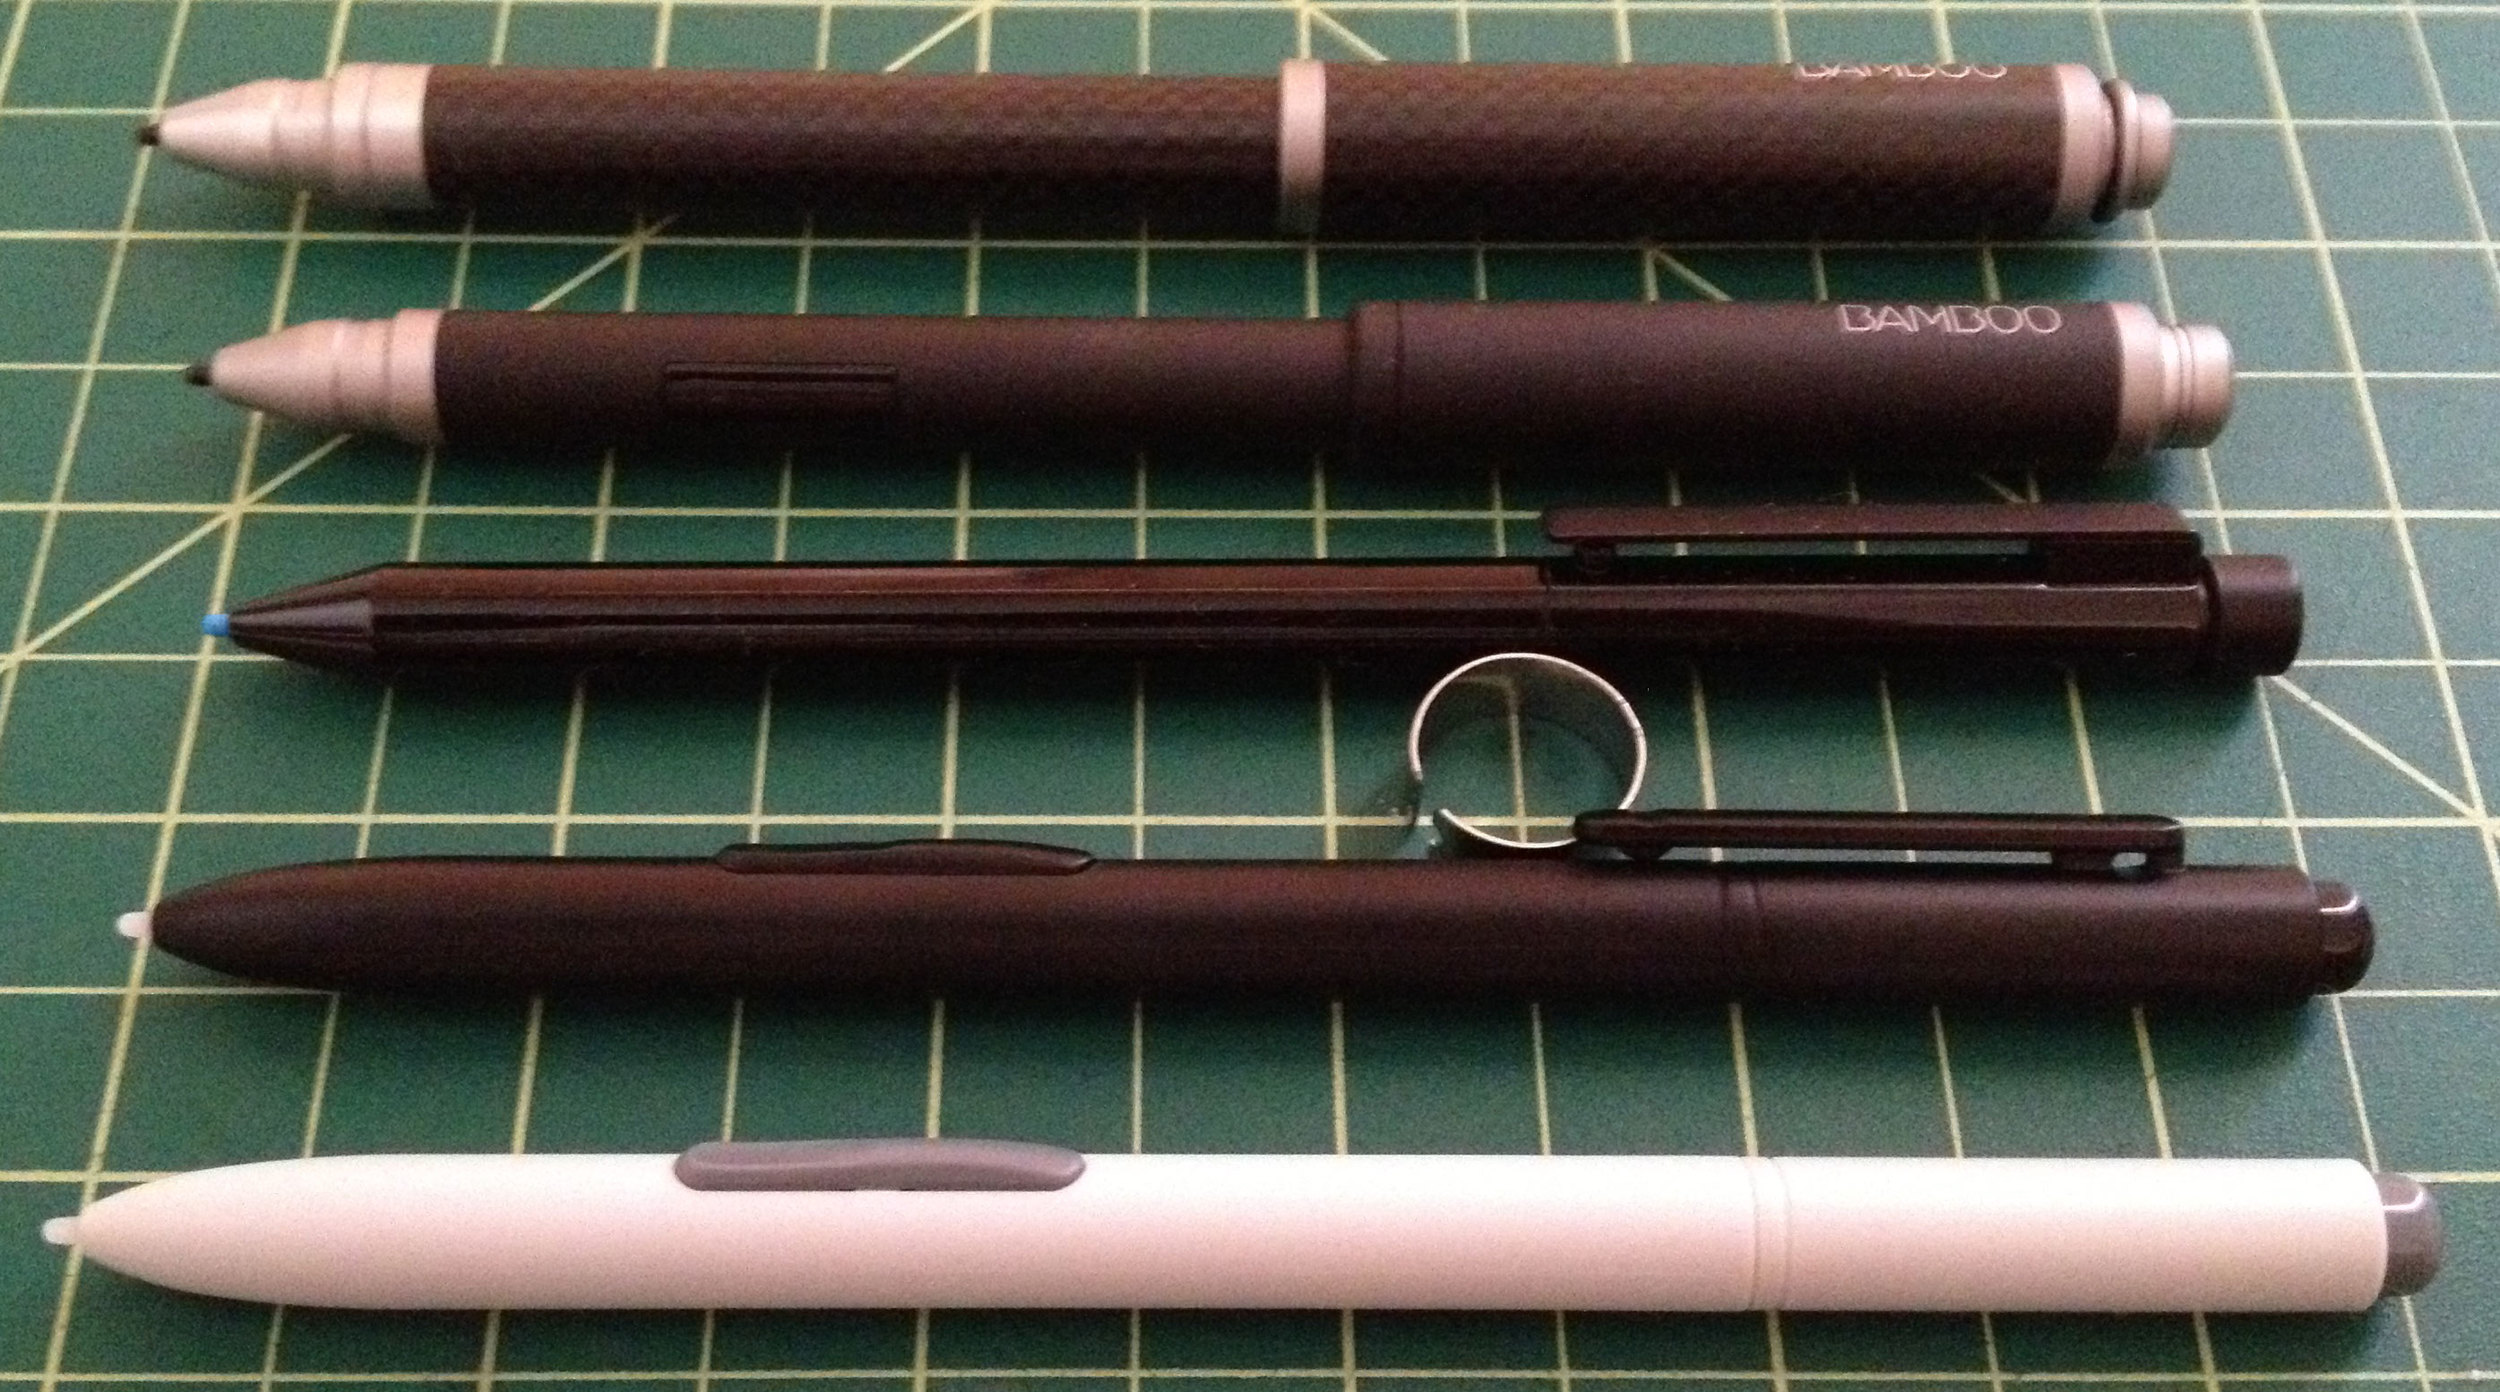 Never mind the lens distortion: the Bamboo Stylii are signifcantly larger than the standard, Samsung or Wacom options.